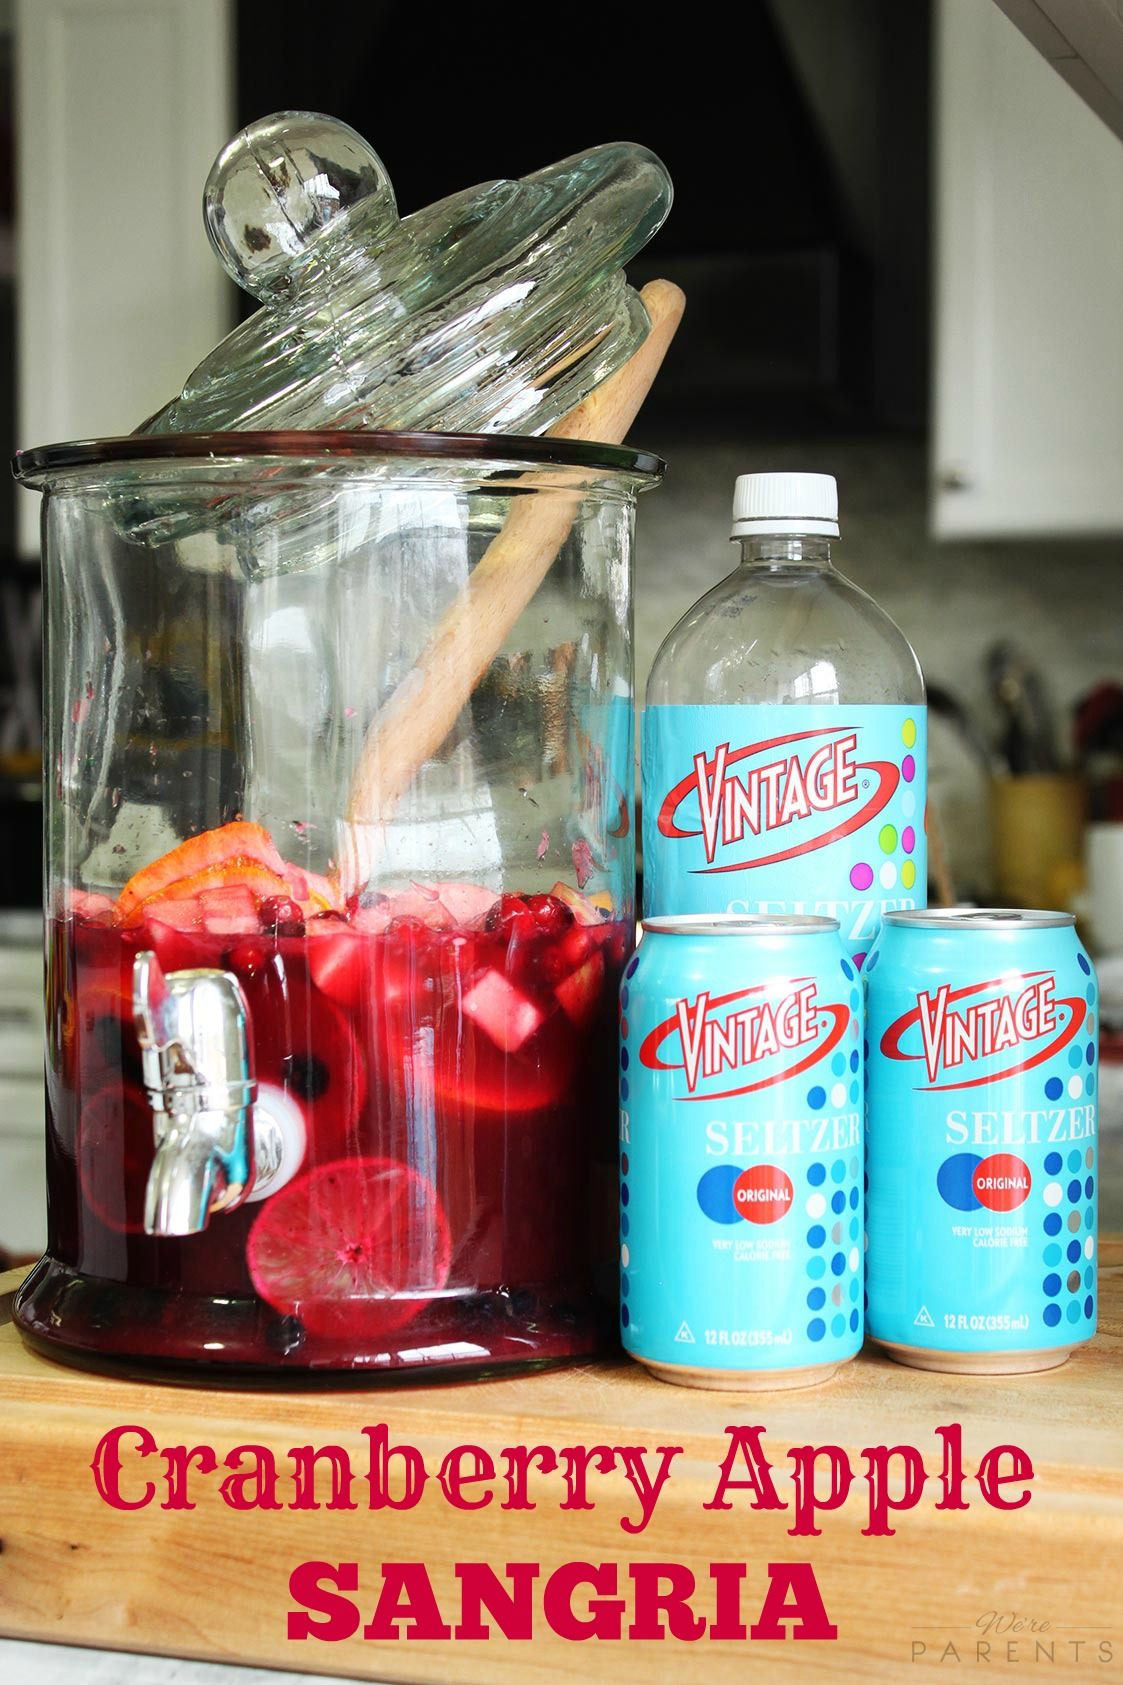 Cranberry Apple Sangria Recipe with Vintage Seltzer